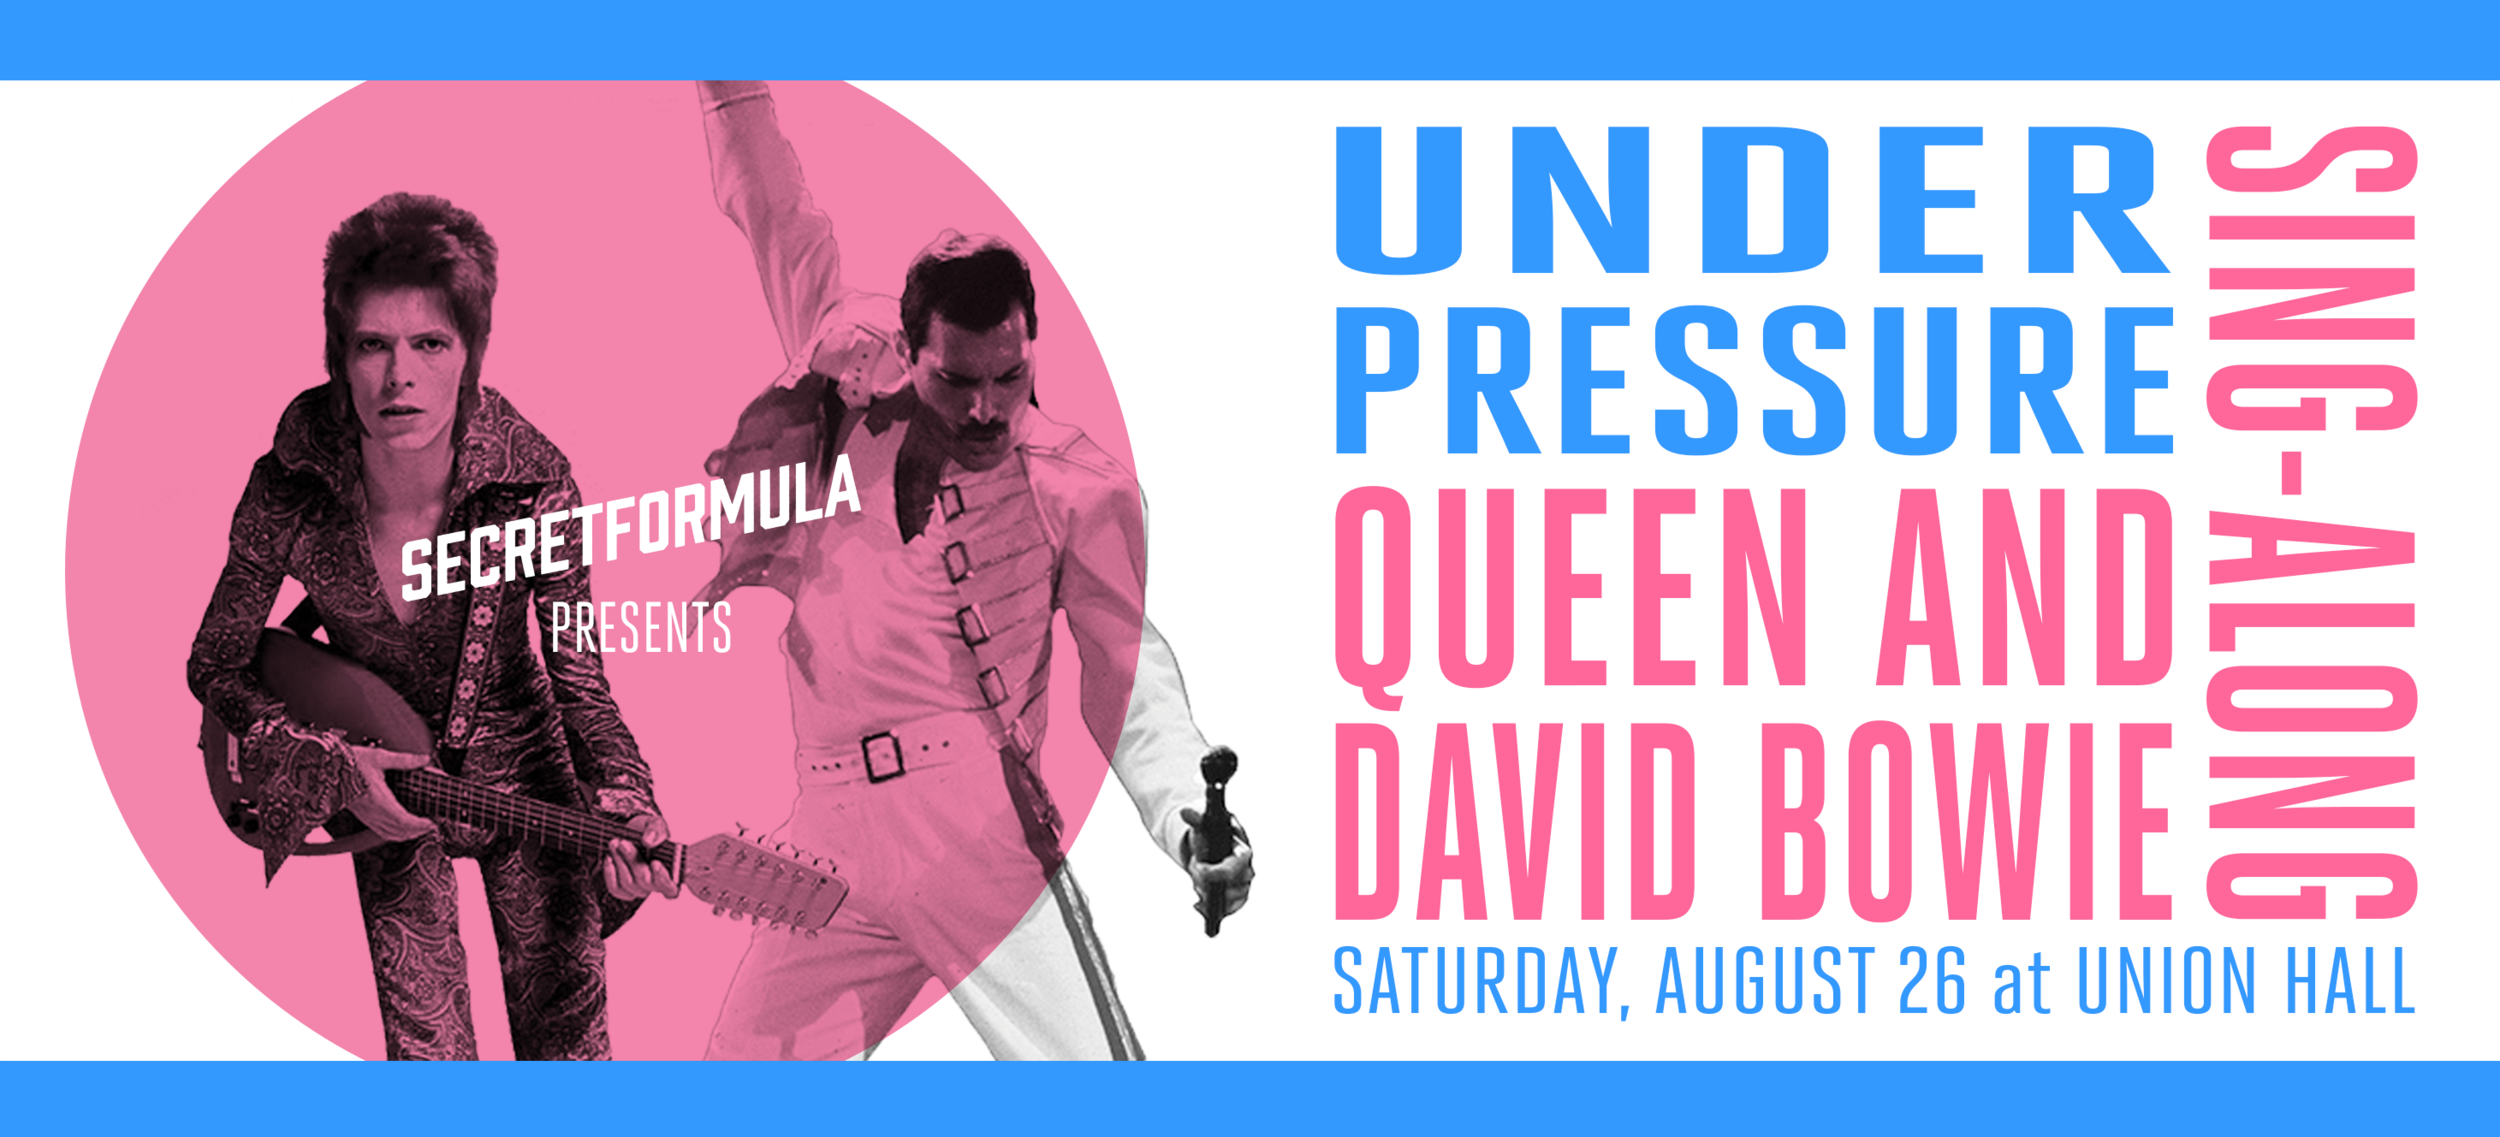 UNDER PRESSURE SING-ALONG - PRESS & NEWSLETTER BANNER - UNION HALL AUGUST 2017.png